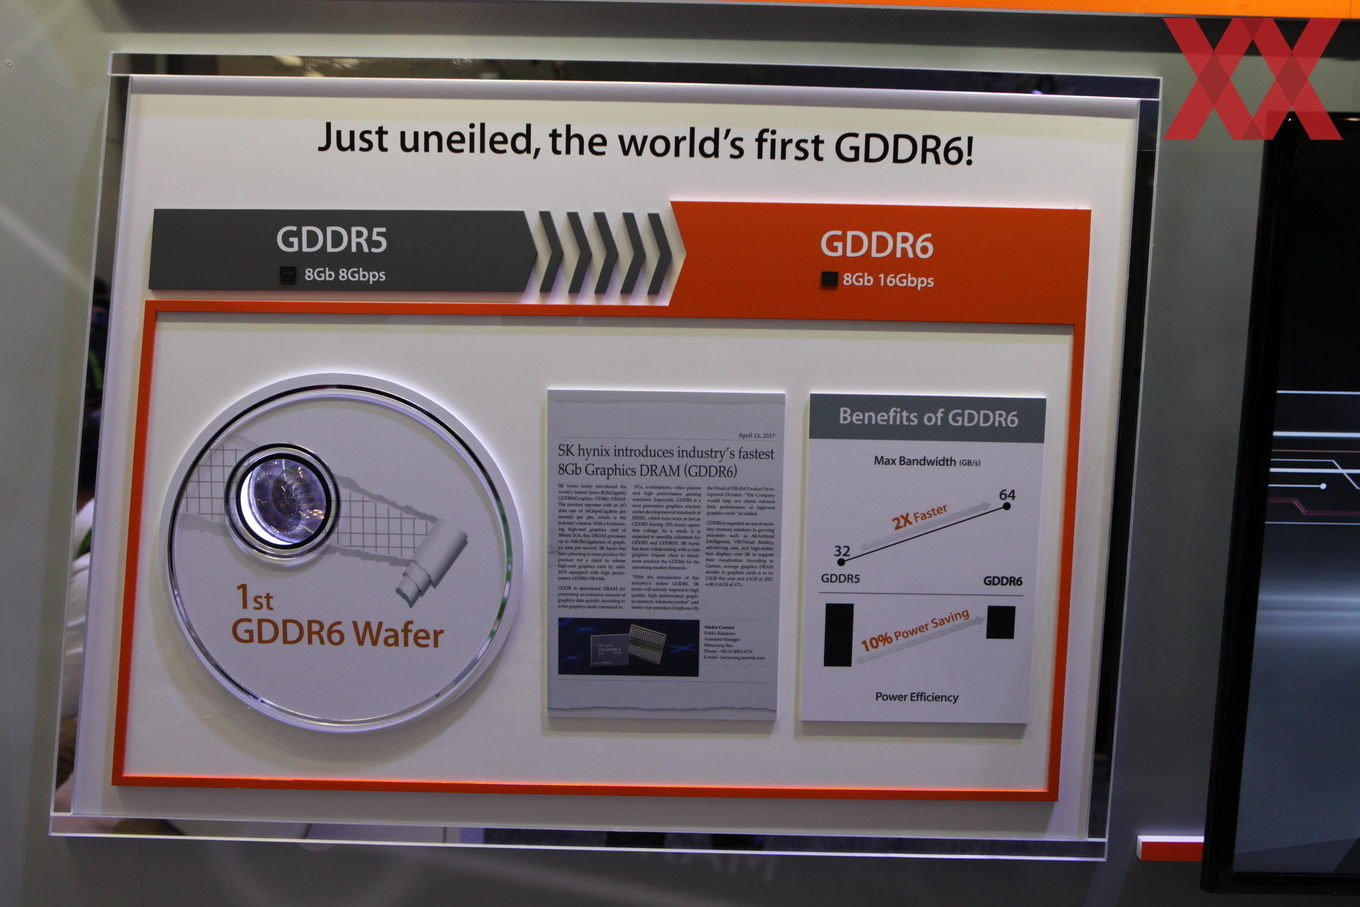 SK Hynix unveiled the first GDDR6 16 Gbps DRAM at GTC 2017.